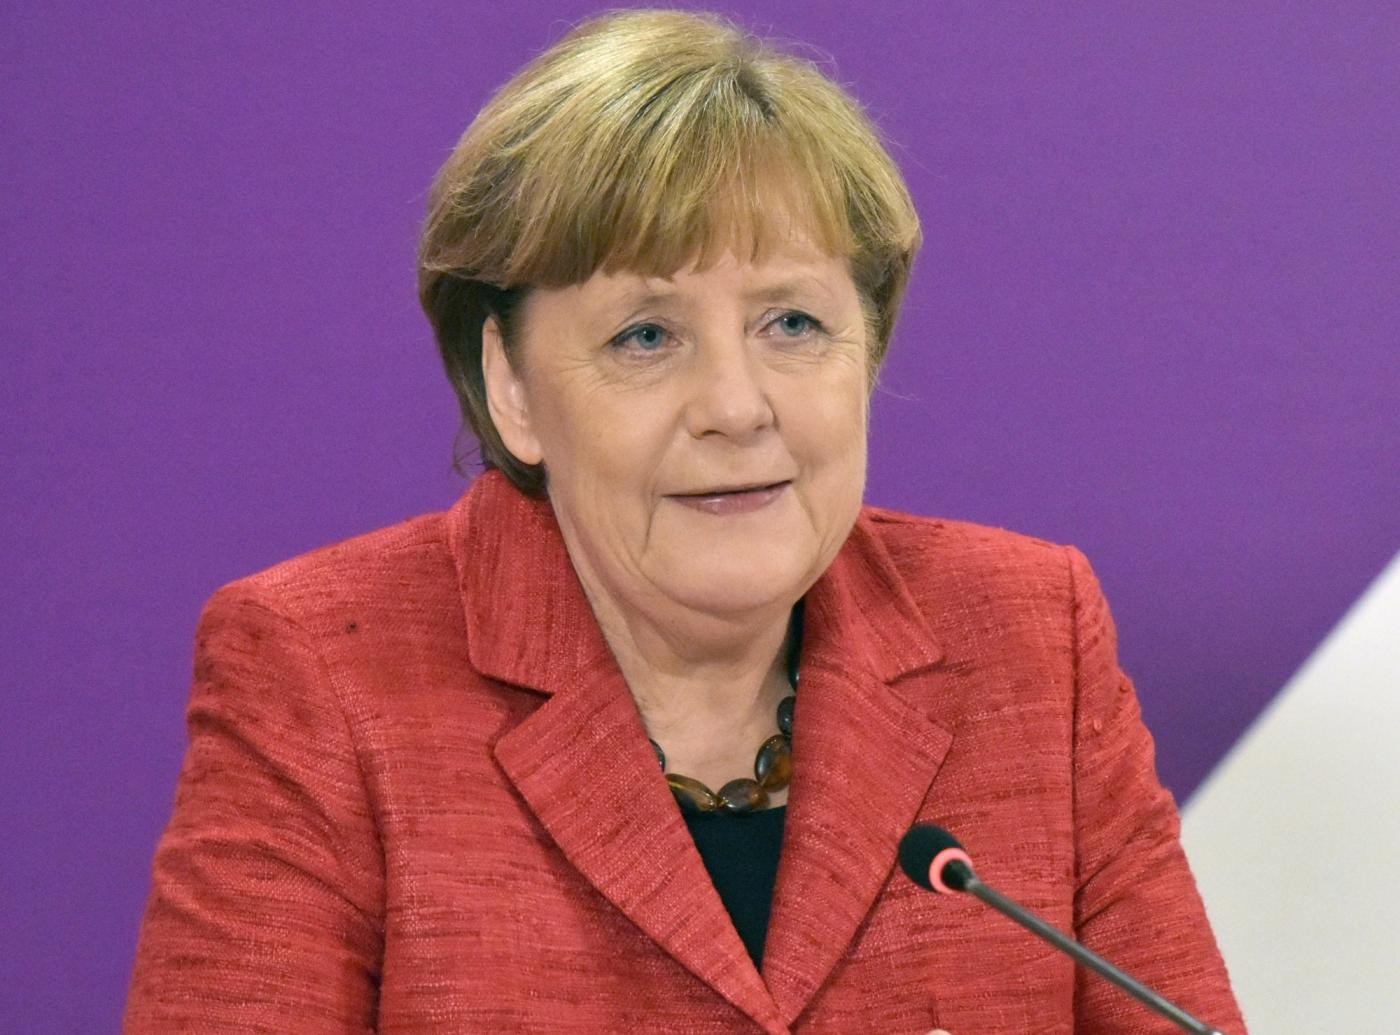 Germany Chancellor Angela Merkel. (File Photo: IANS) by .